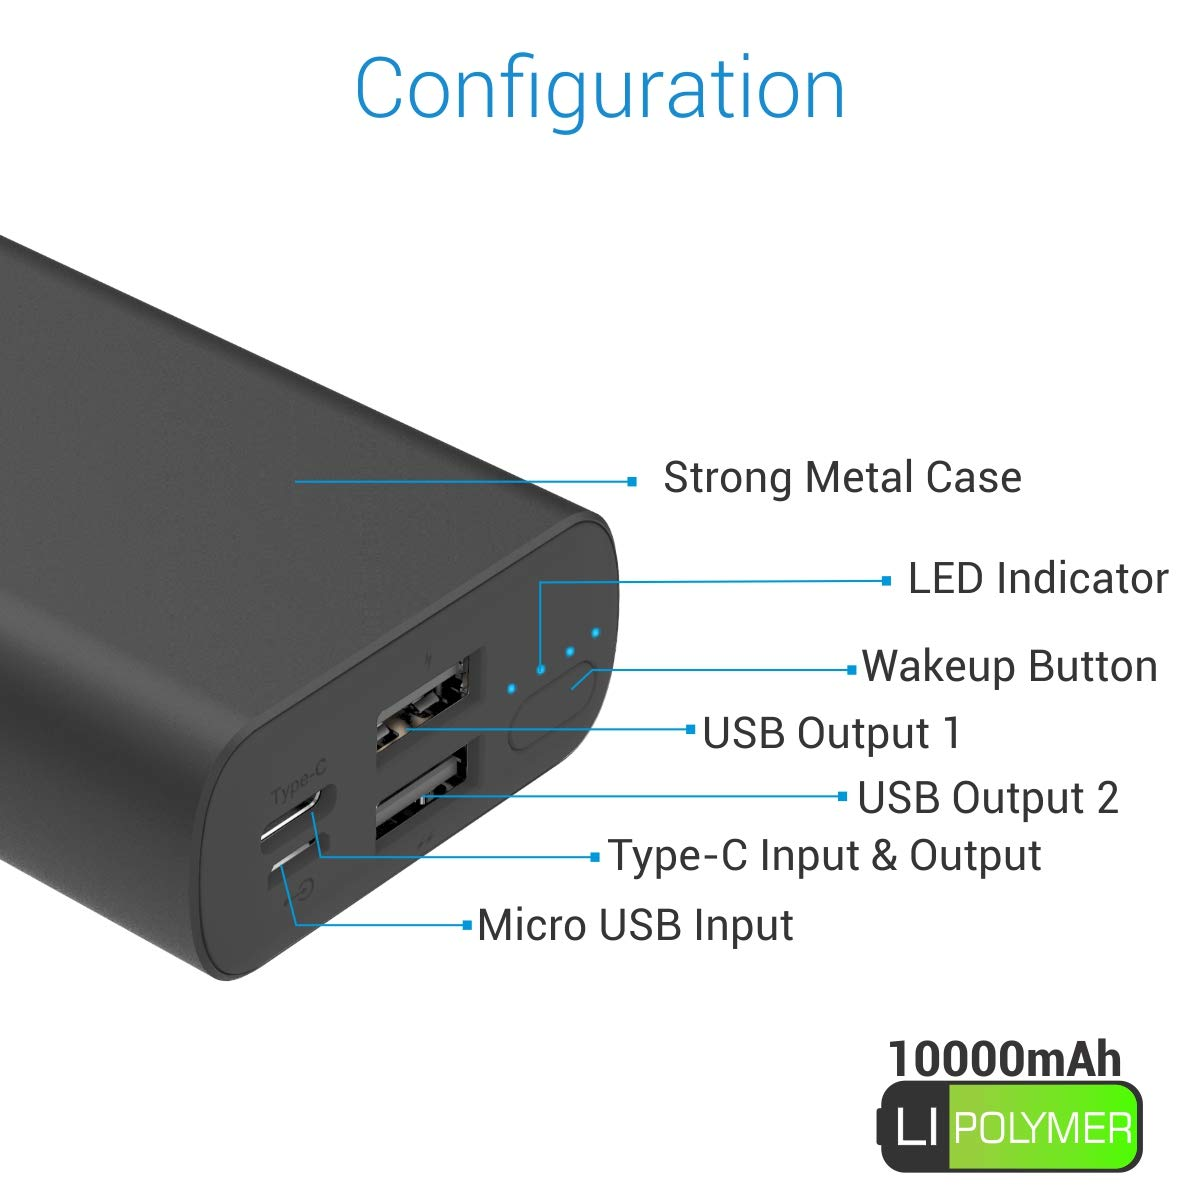 Portronics Power PERK 10K 10,000 mAh Power Bank with LED Indicator, 2.1A Dual Inputs (Type C + Micro USB) and 2.1A Dual USB Outputs + 2.1A Type C Output for All Android and iOS Devices (Black)